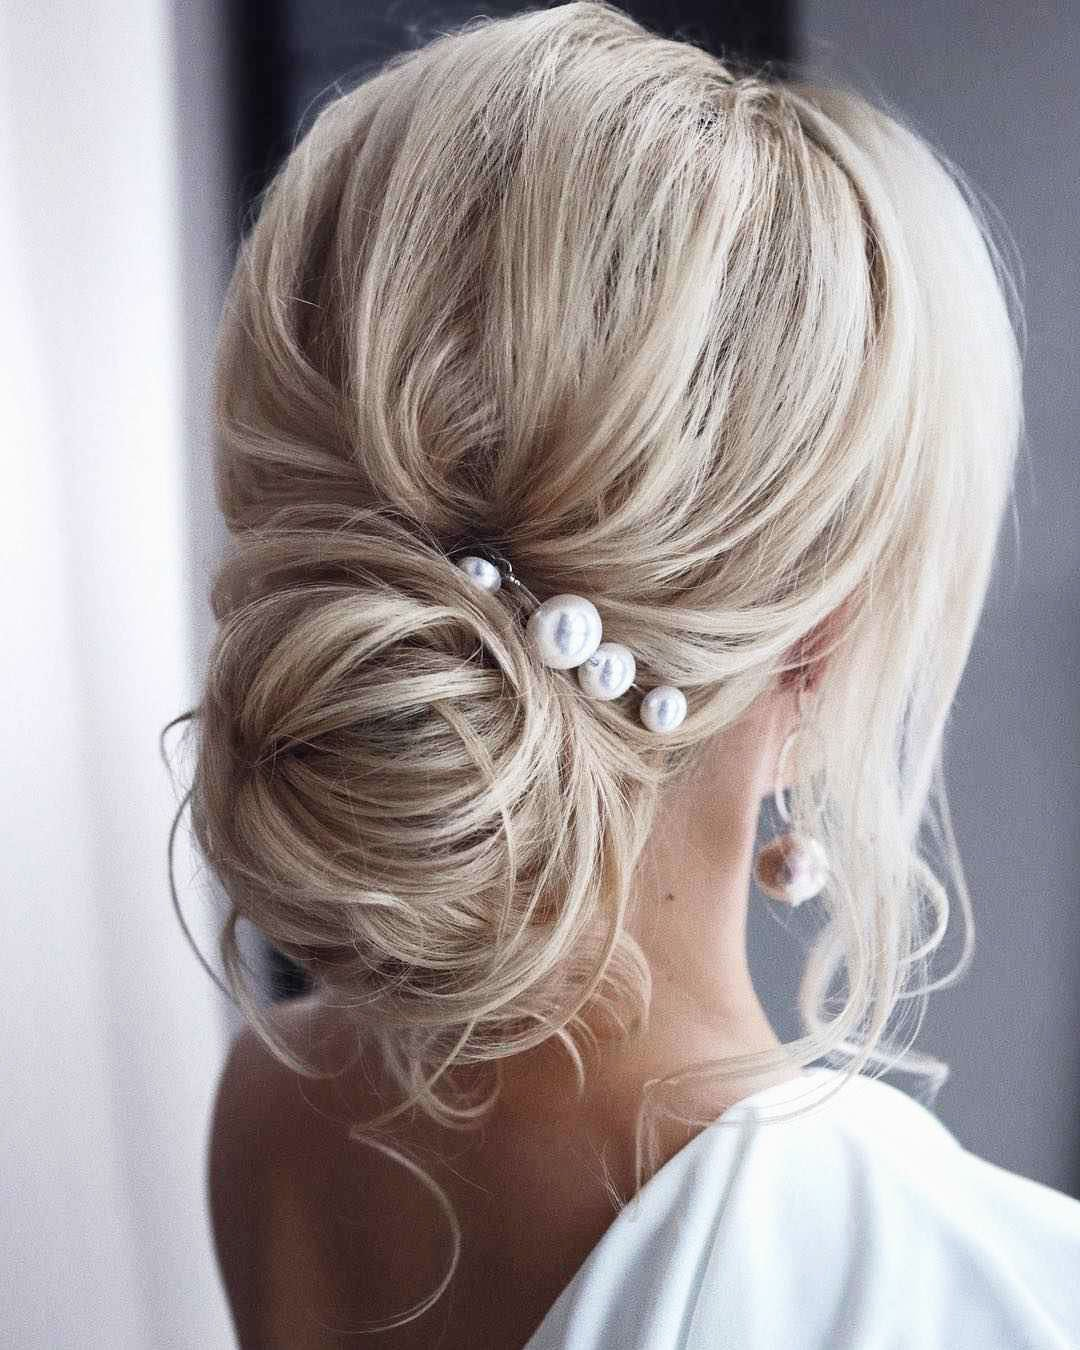 Hairstyles long hair with white pearl hair pin